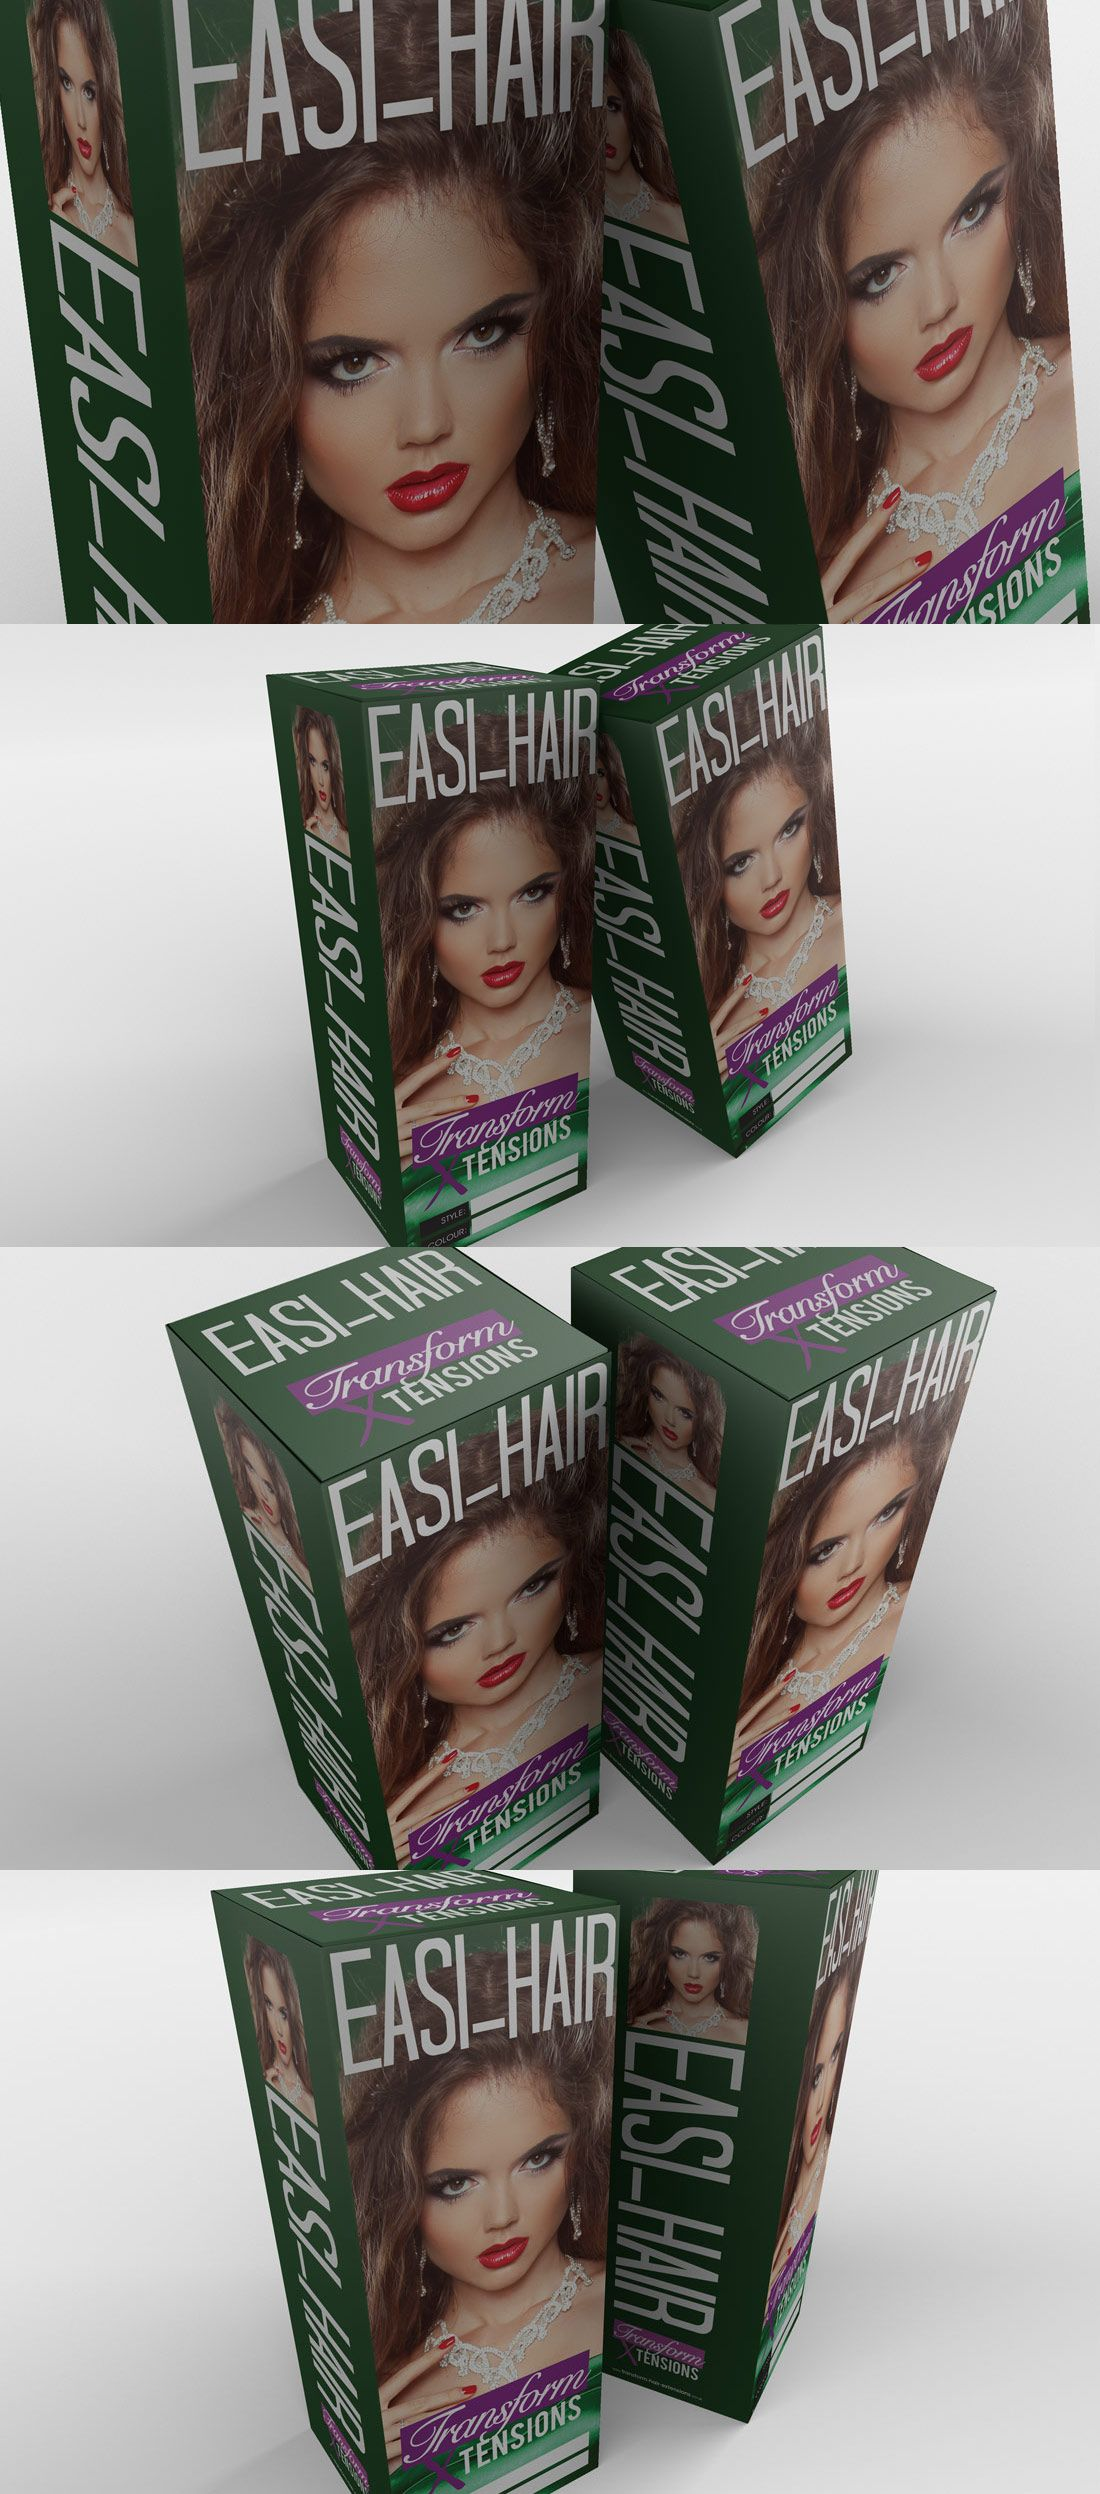 Packaging Design For Transform Hairextensions Variant Brand Easi